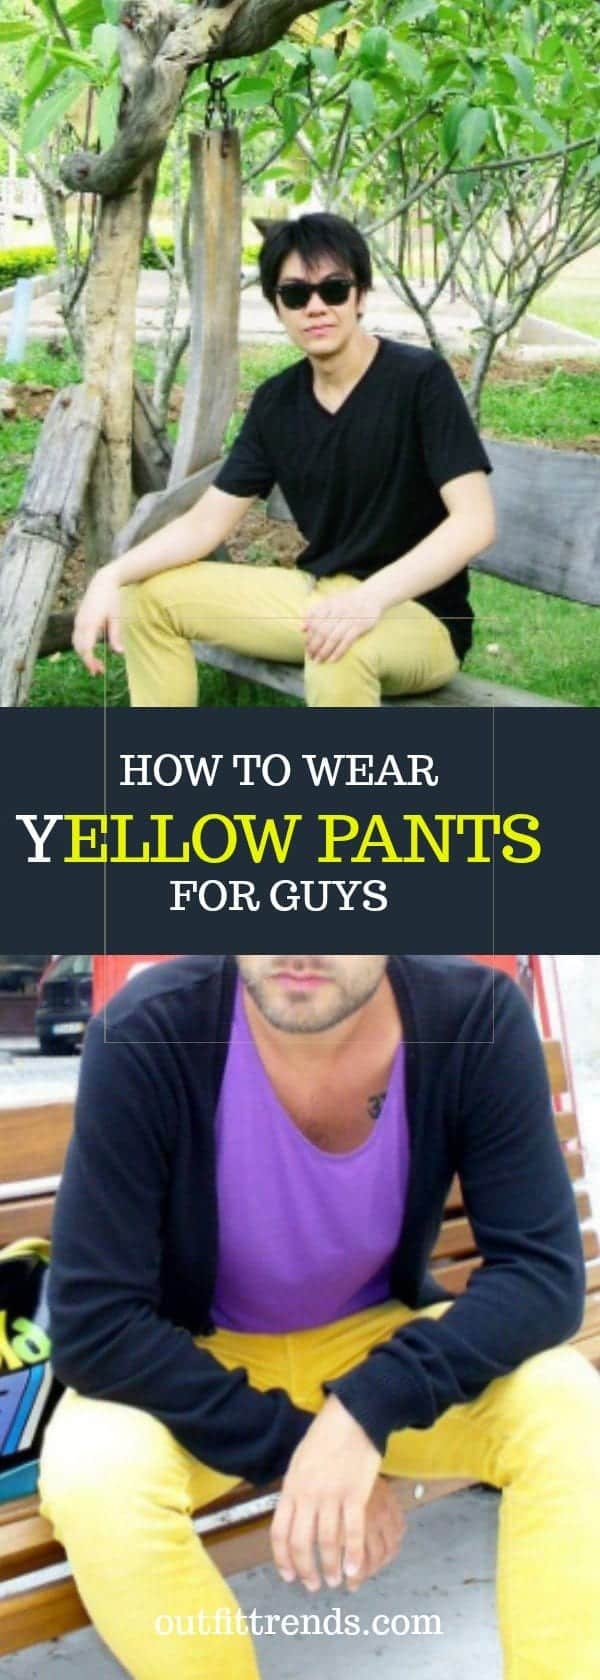 Sugar-Cookies-Are-Bomb Men's Yellow Pants Outfits-35 Best Ways to Wear Yellow Pants